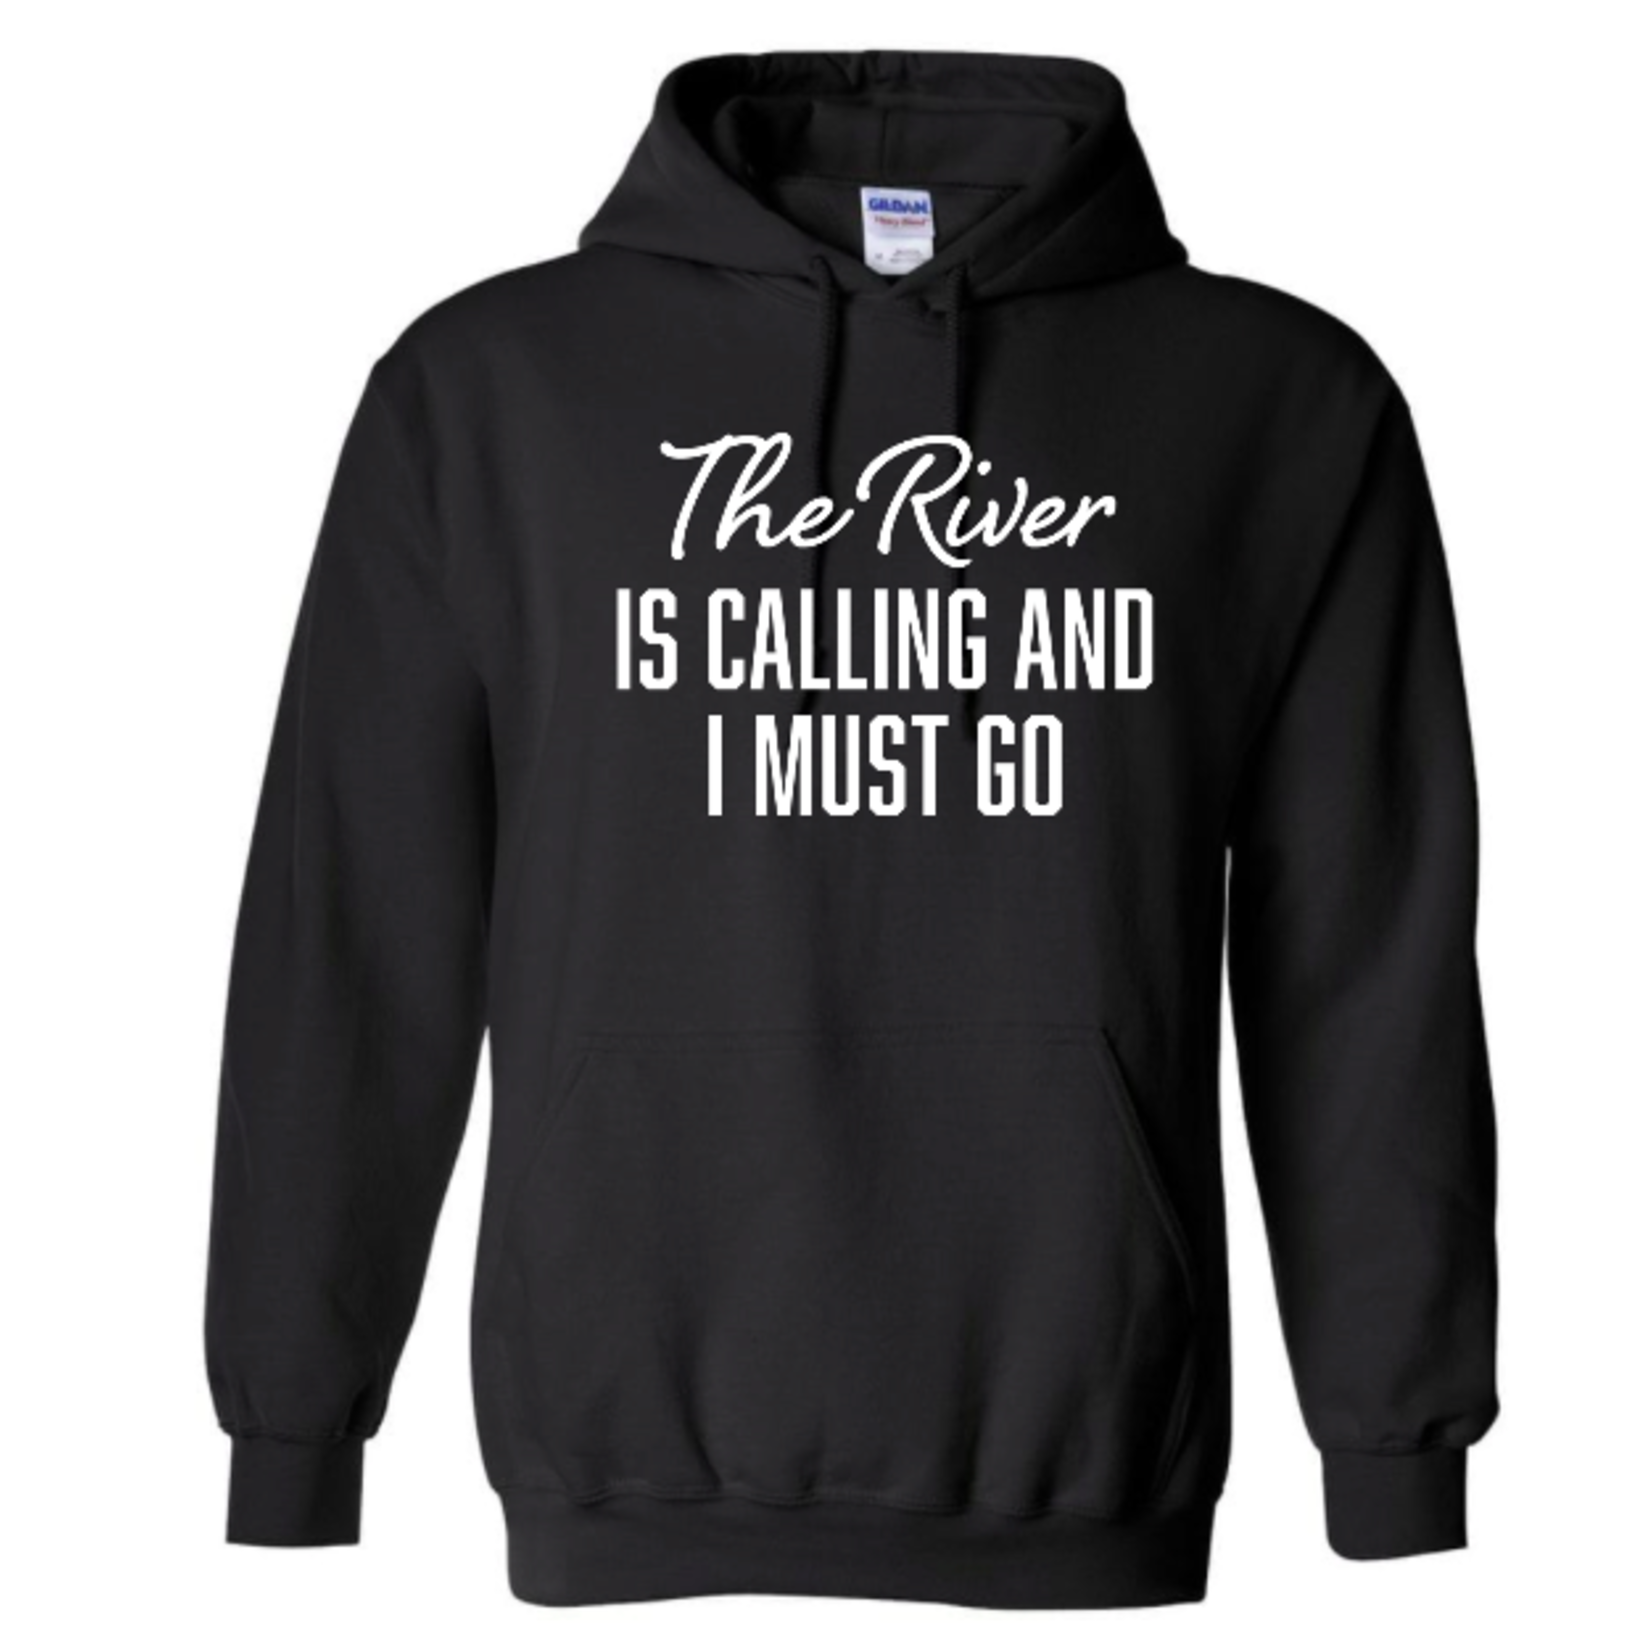 favourite things apparel The river is calling and I must go